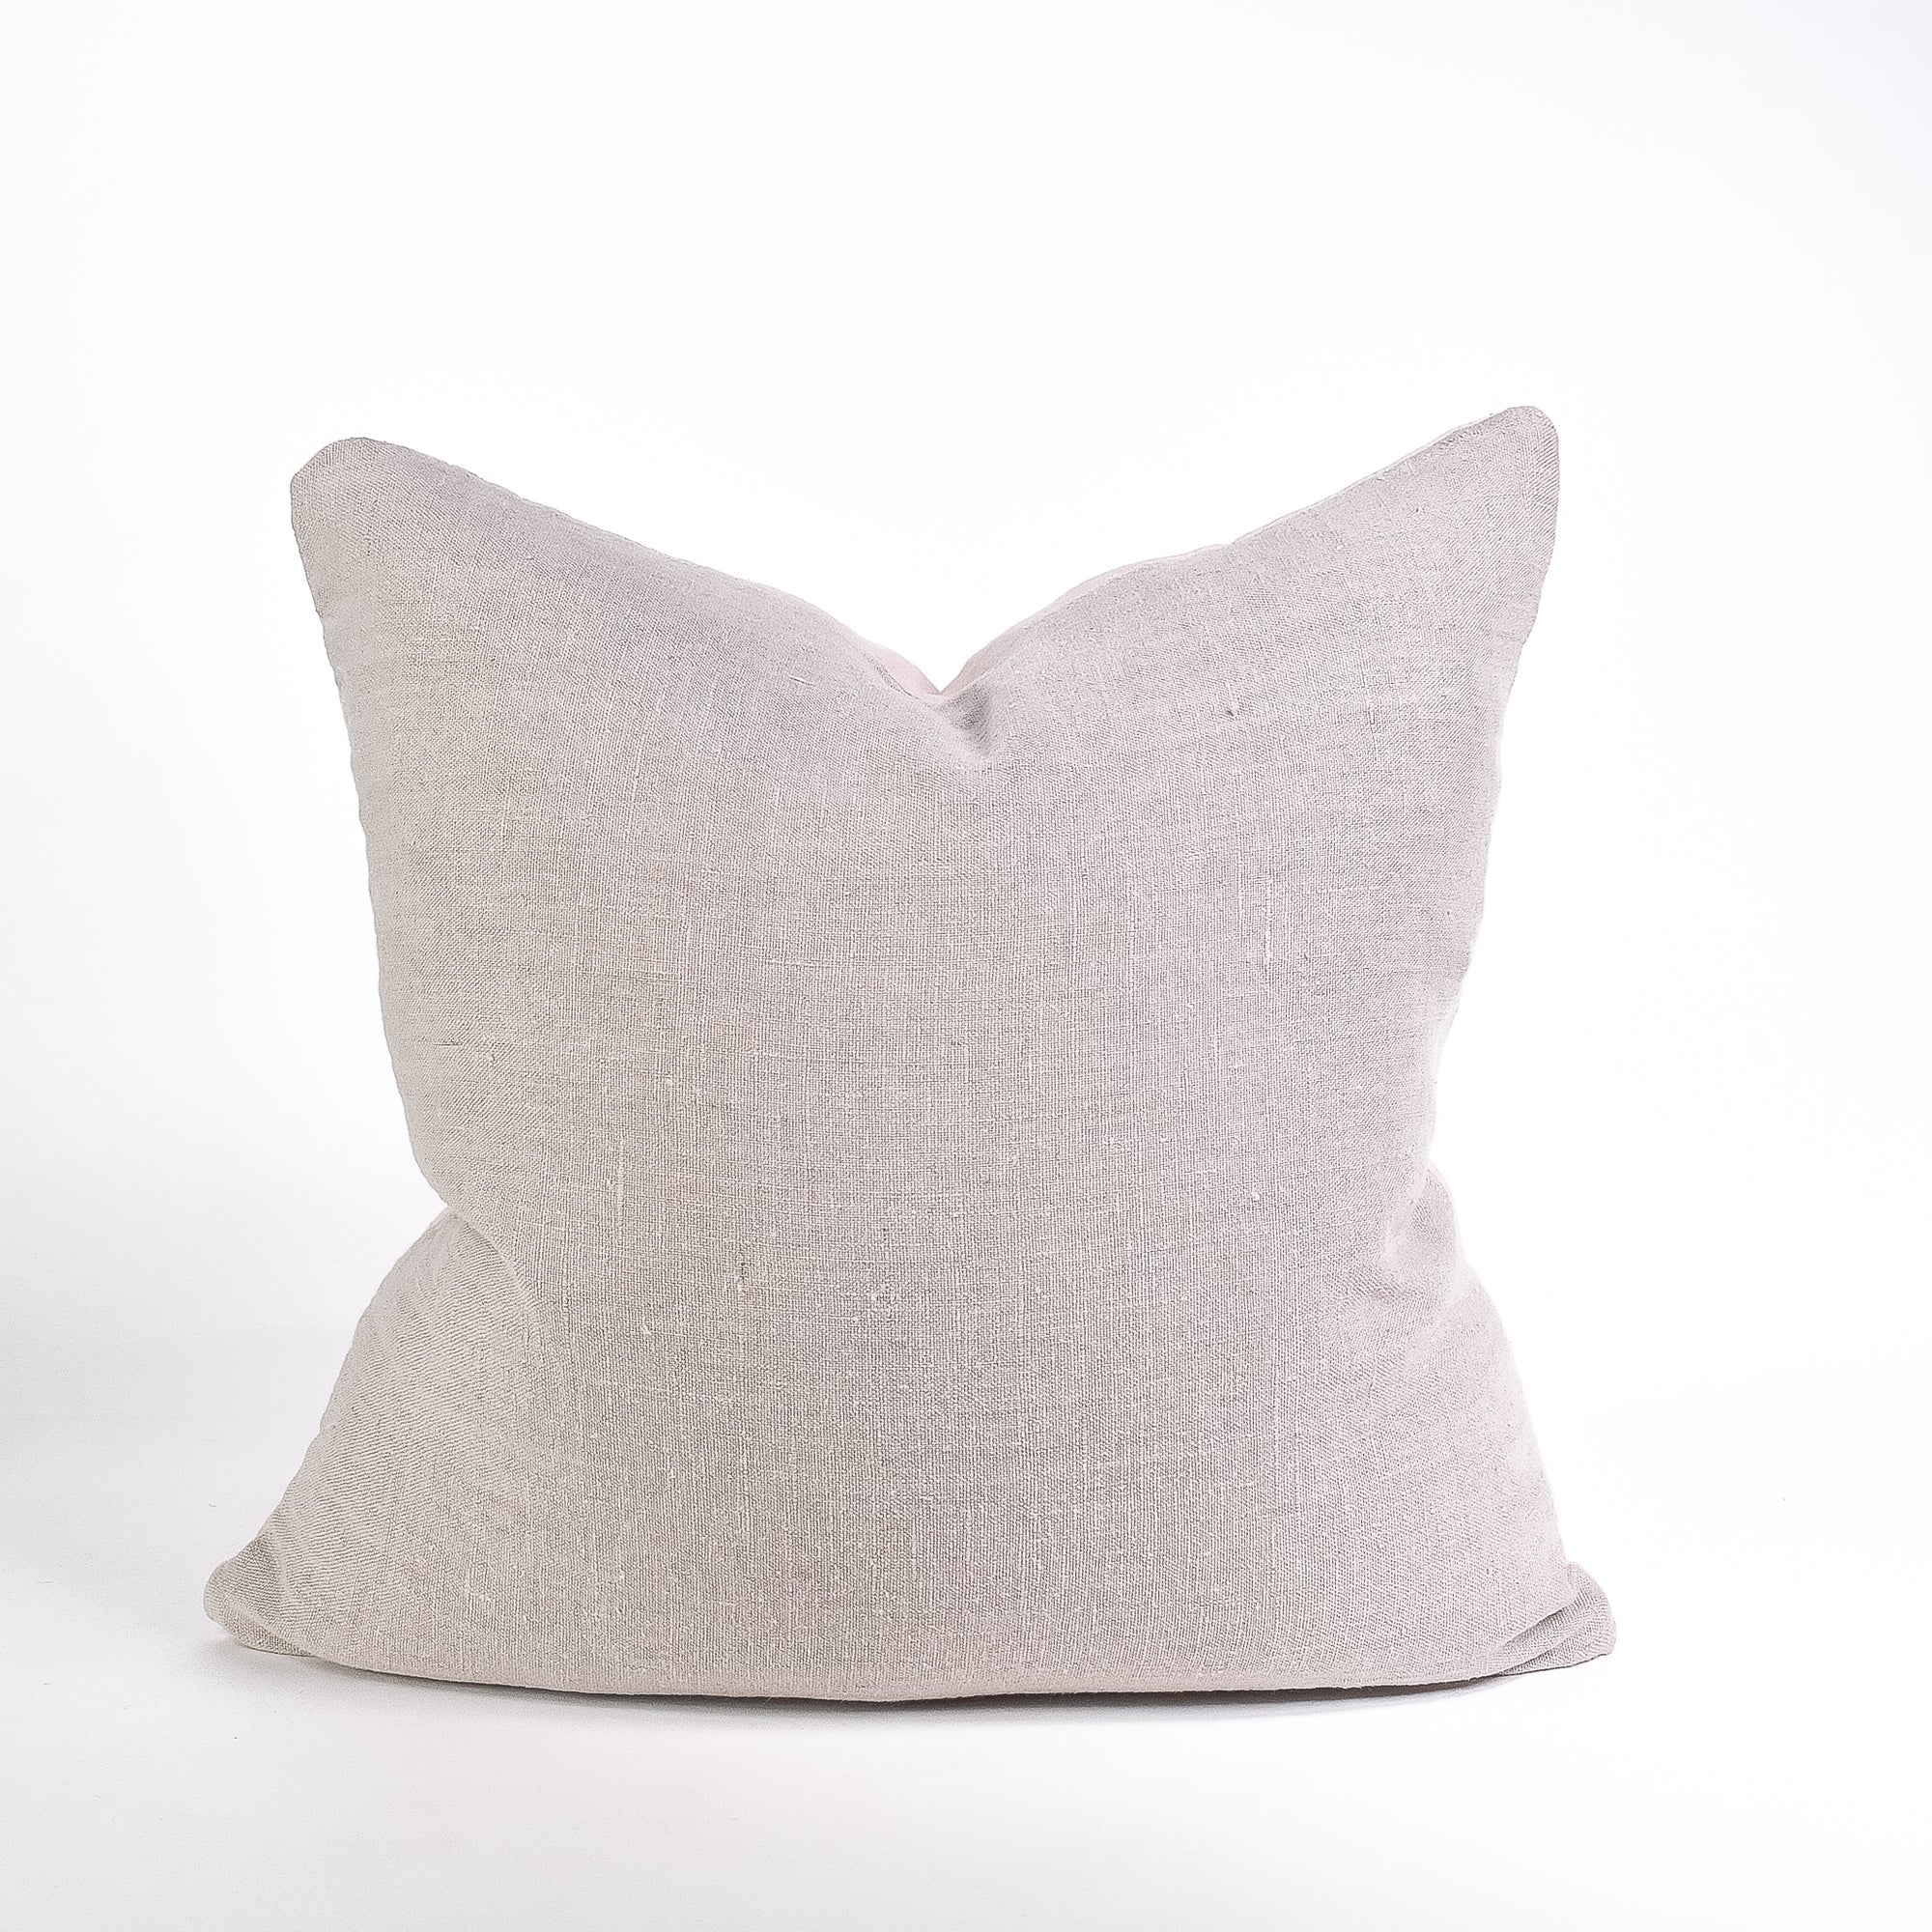 Cloudy Linen Pillow